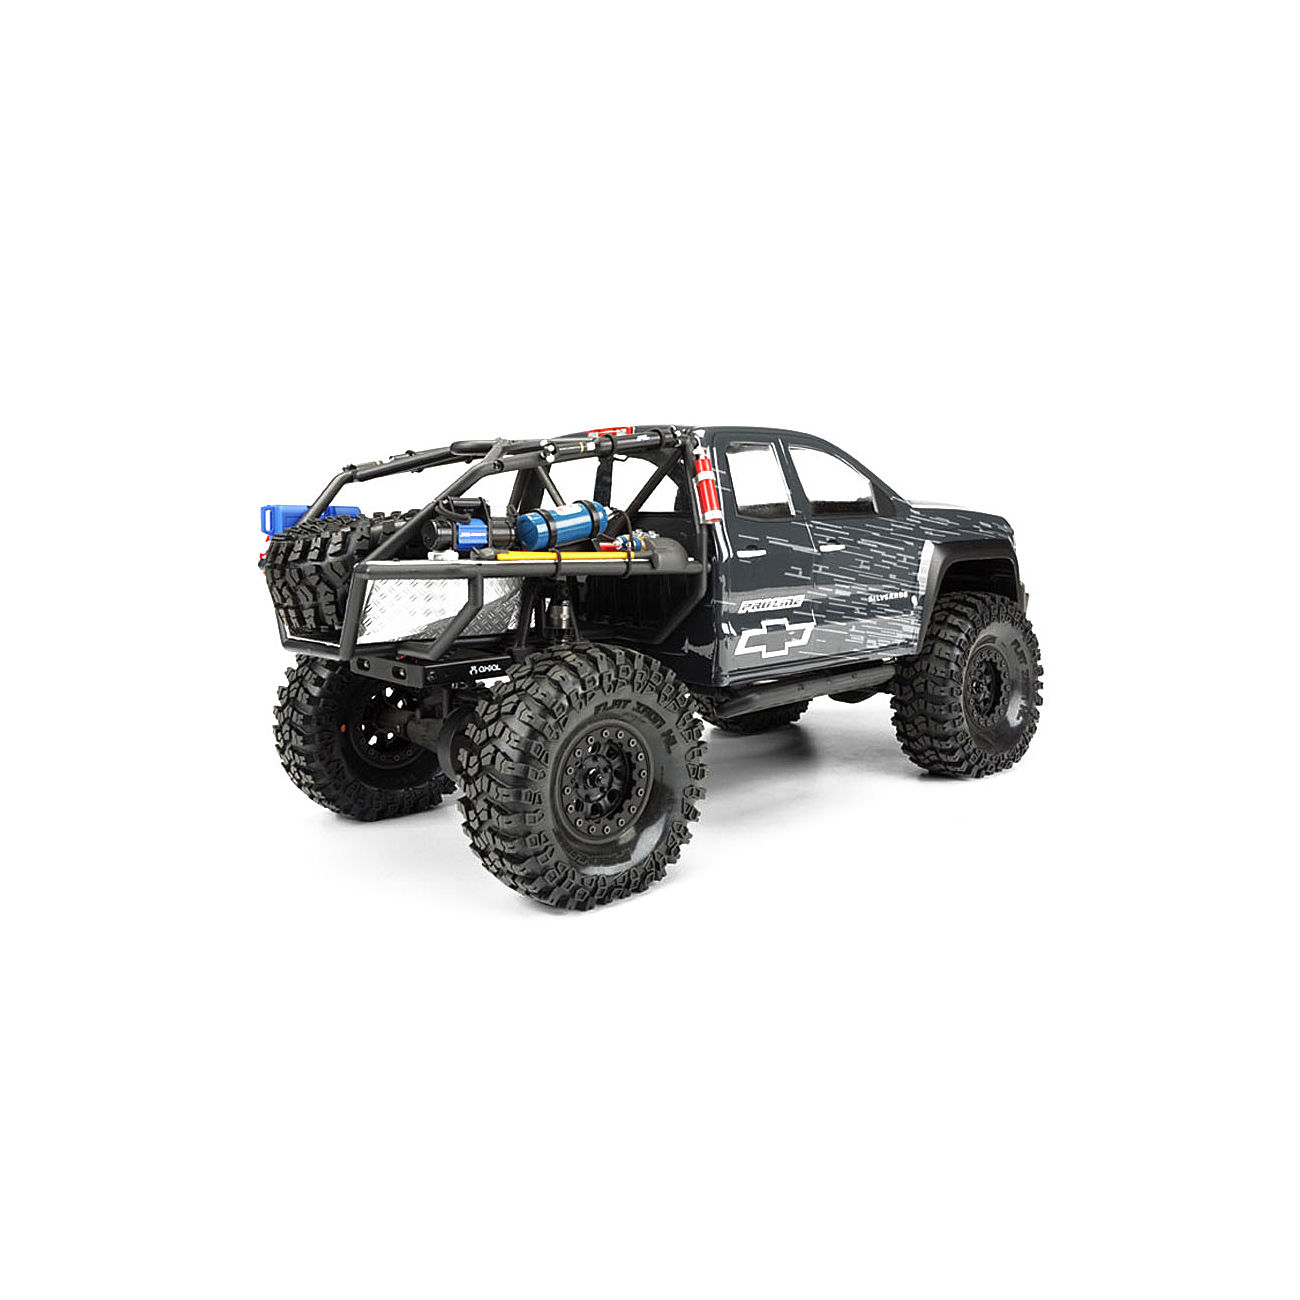 pro line 1 10 lexan karosserie chevy silverado f axial. Black Bedroom Furniture Sets. Home Design Ideas